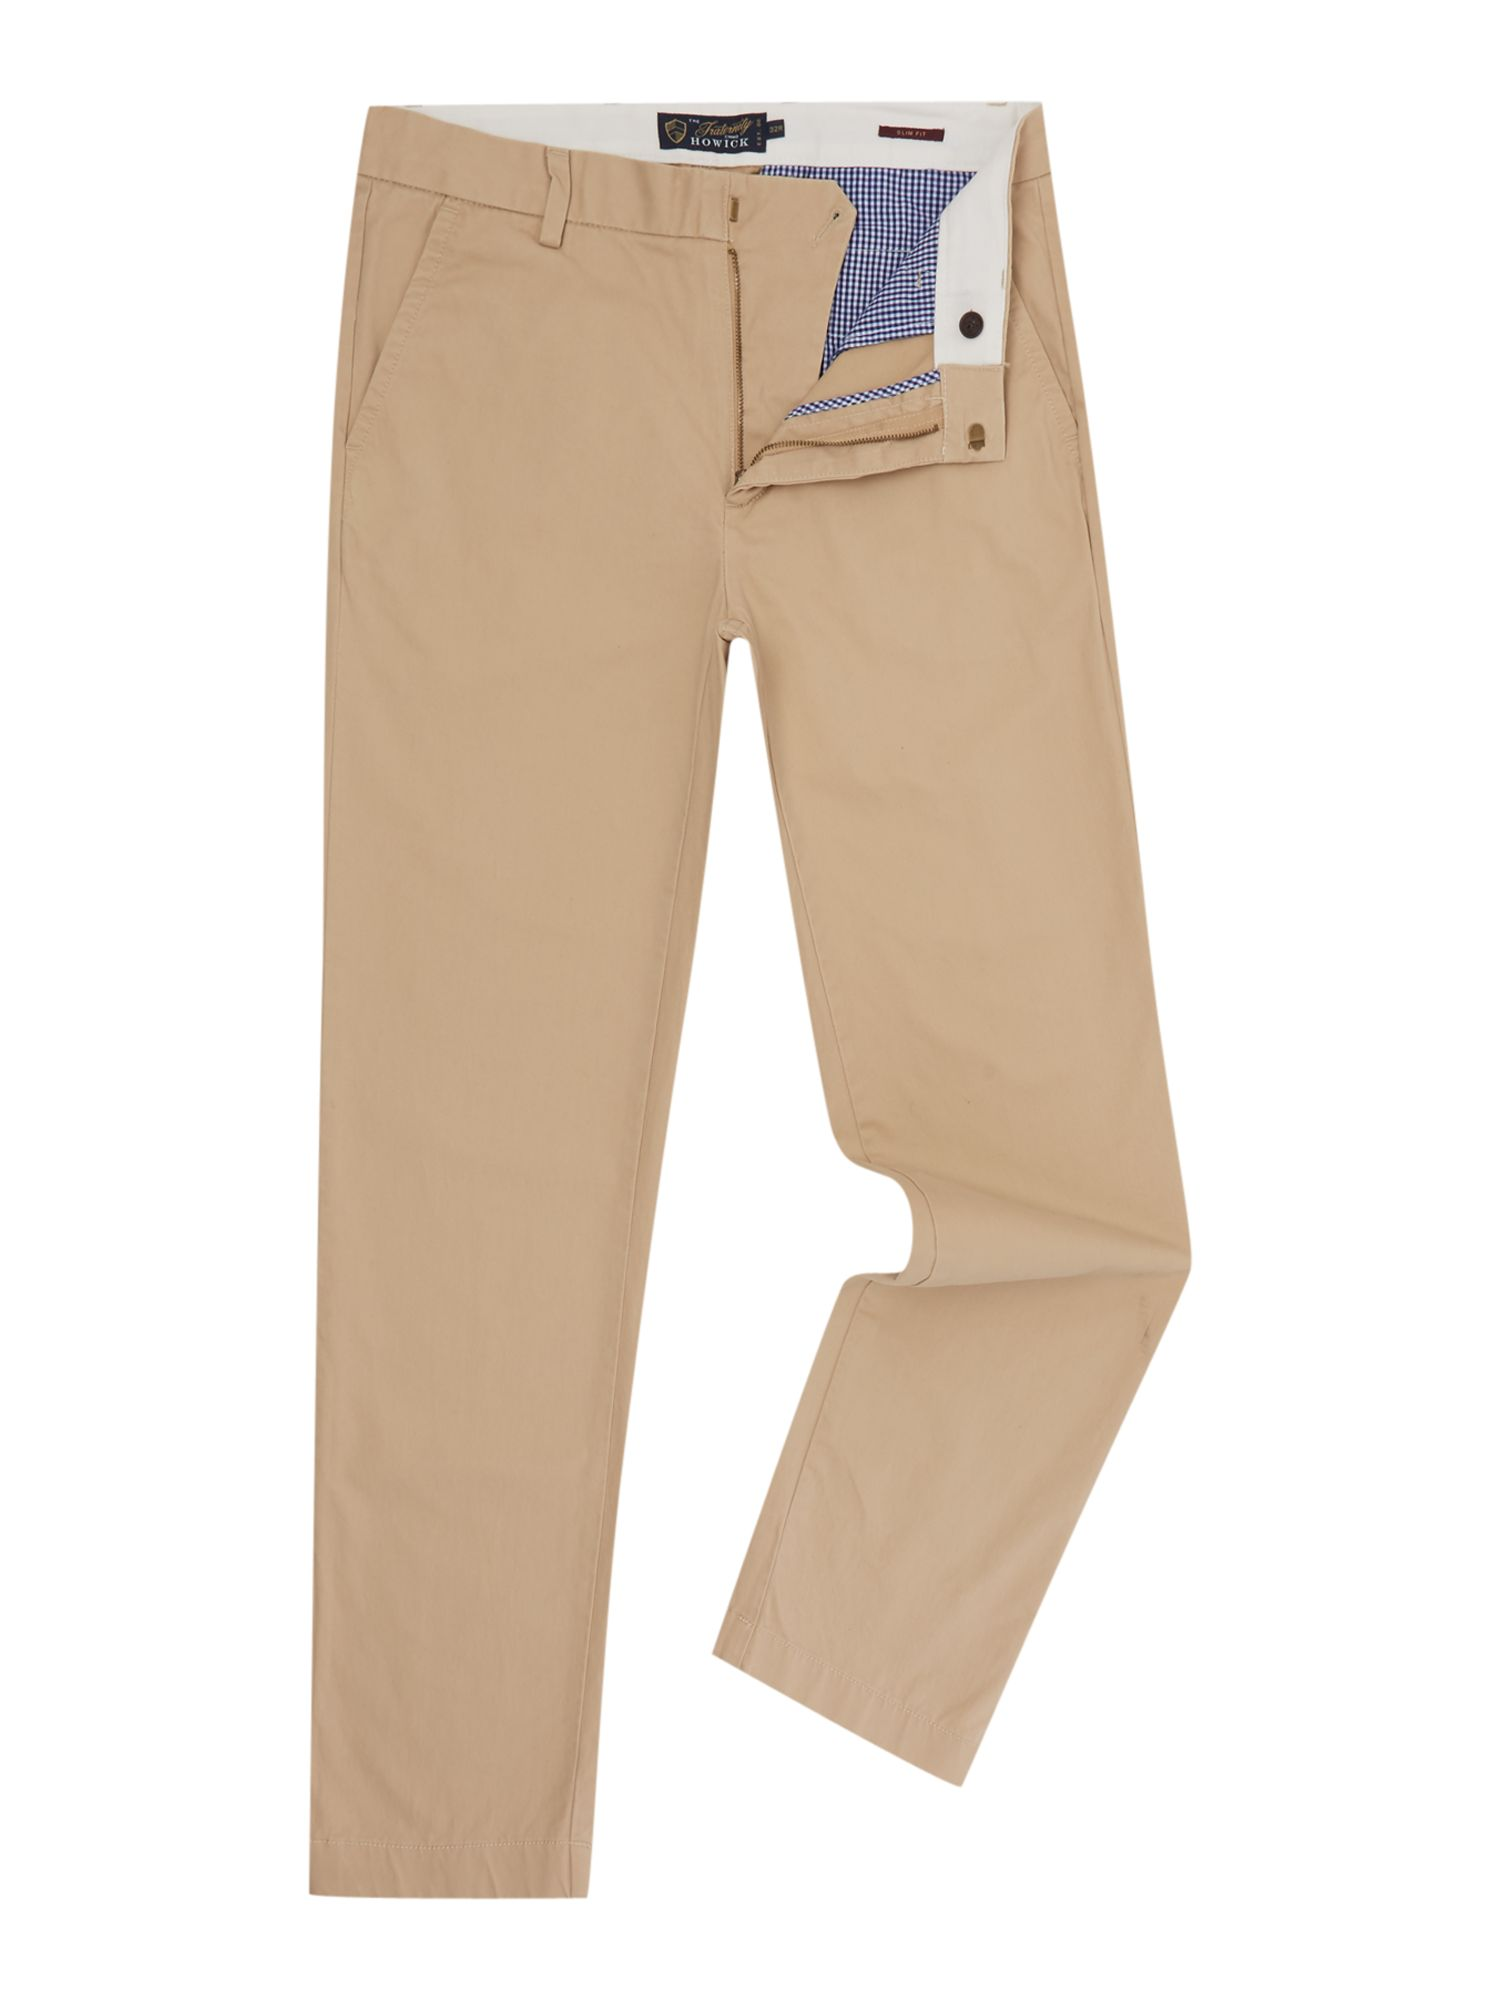 Howick Men's Howick Slim Fit Fraternity Casual Chino, Biscuit